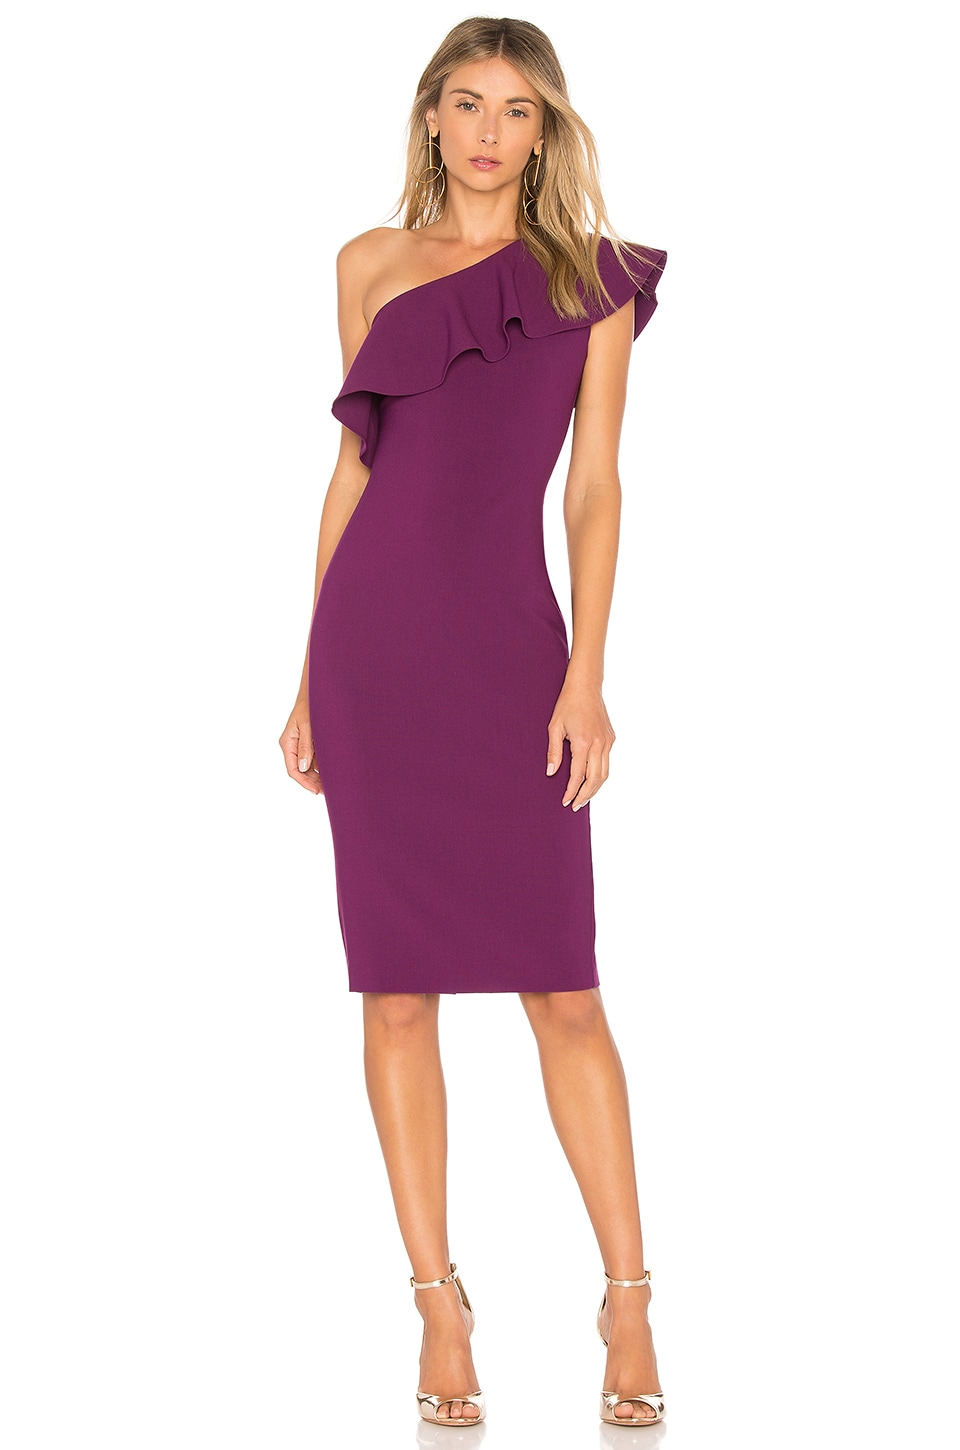 LIKELY Wilshire Dress in Electric Plum